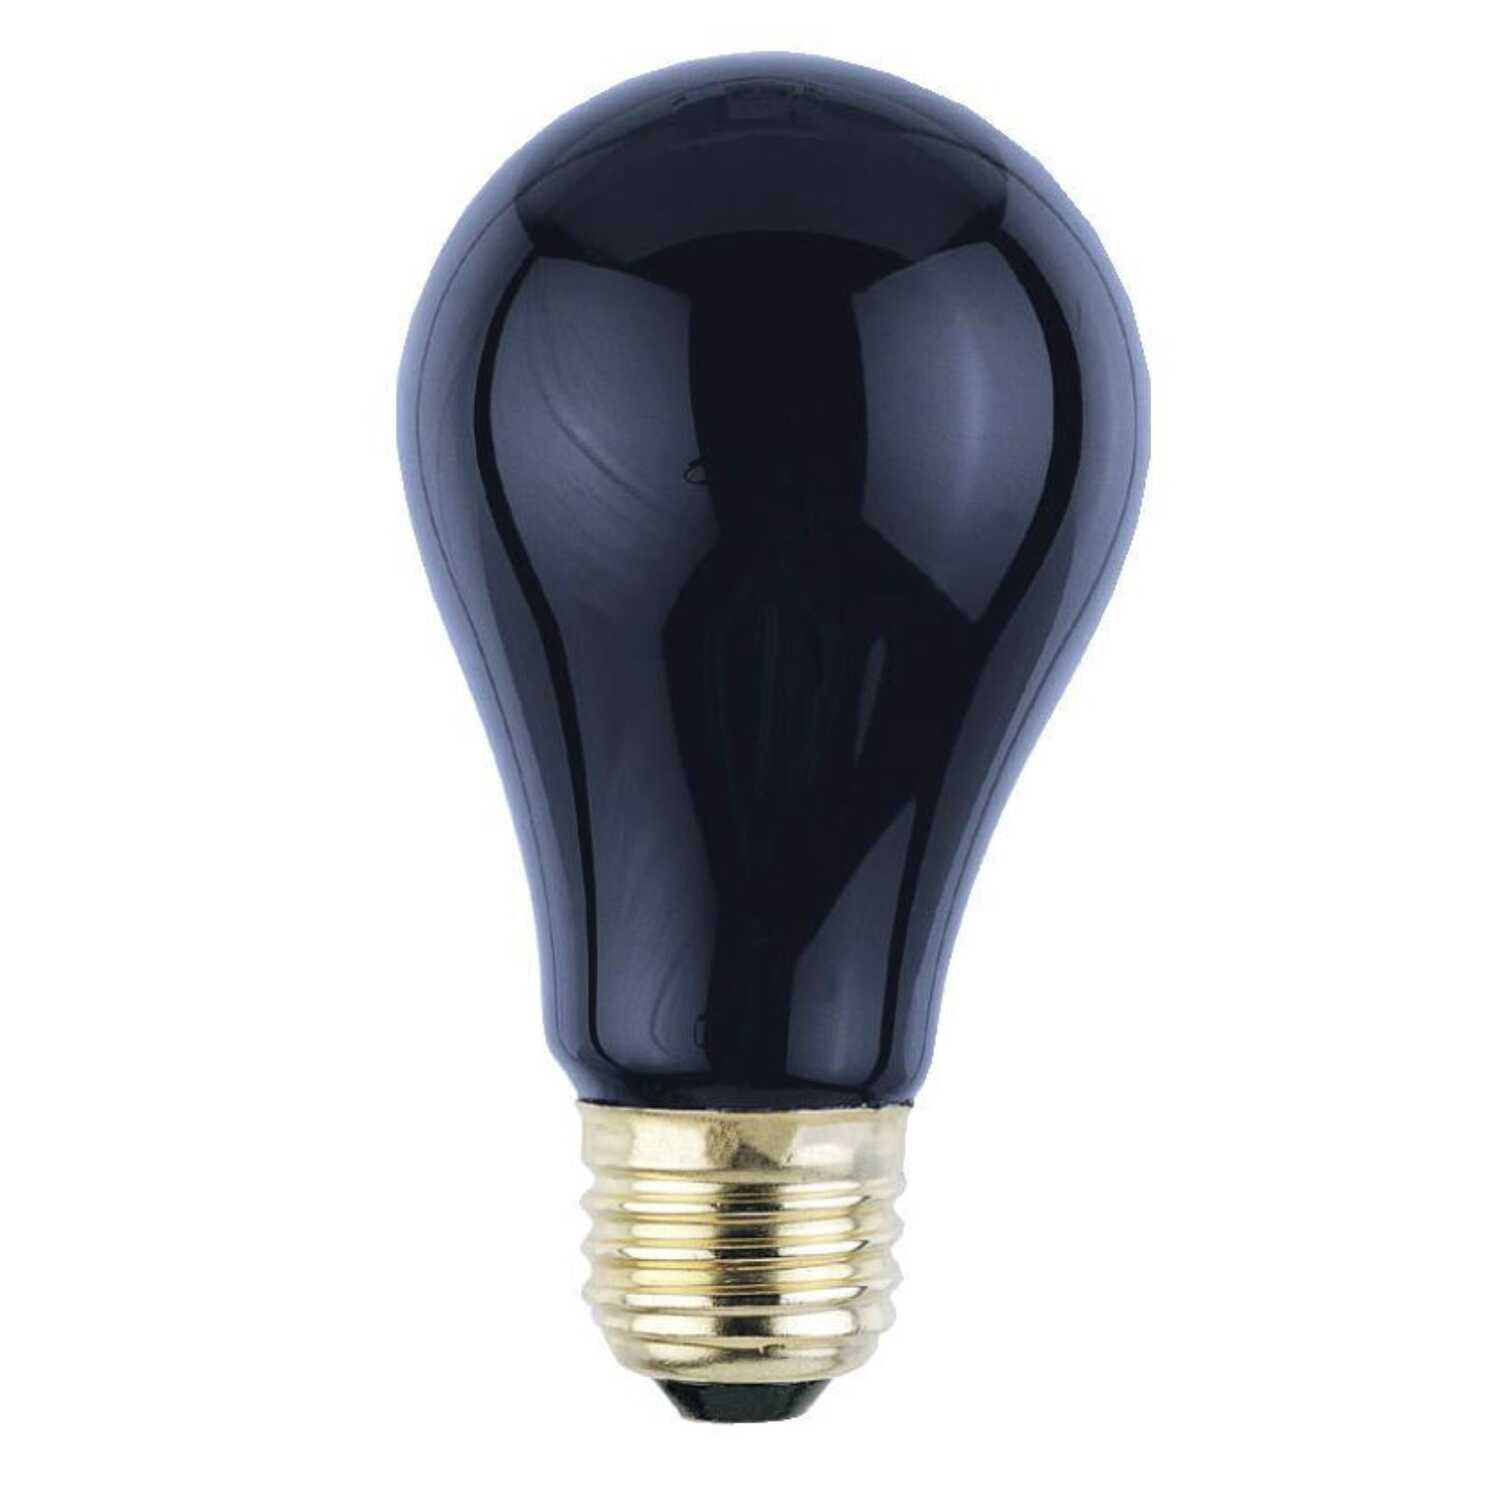 Westinghouse  75 watts A19  Incandescent Bulb  Black Light  1 pk A-Line